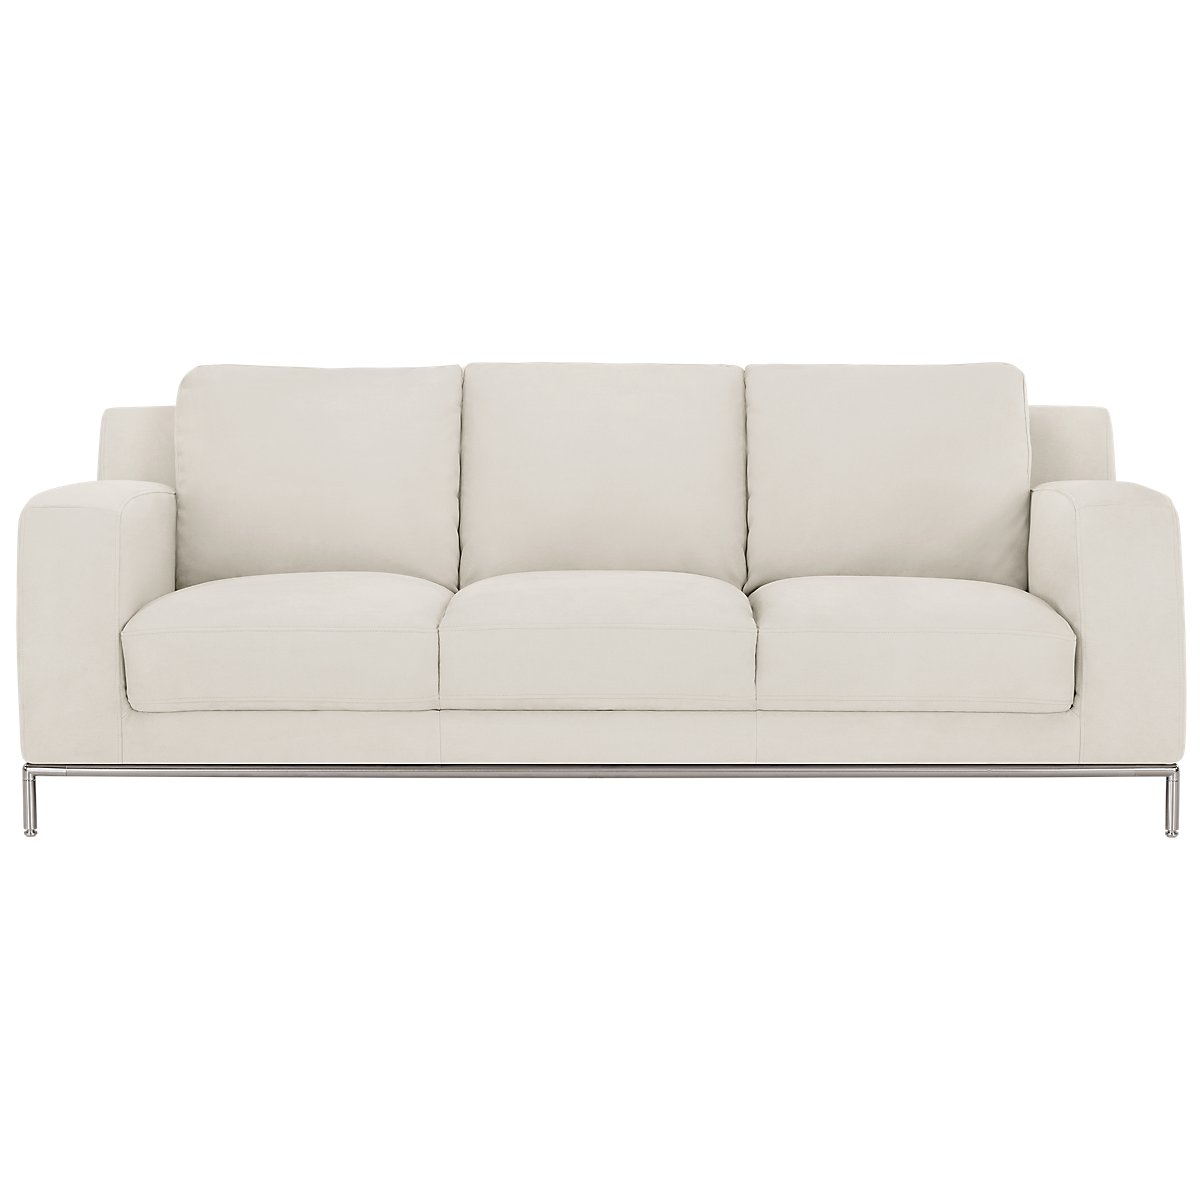 Item additionally Nova Wavy Infinity Coffee Table 5310266b Nva2233 besides 4m34a7 likewise Porada Riga Large Sideboard moreover Ku Wynn White Micro Sofa. on all upholstered dining room chairs